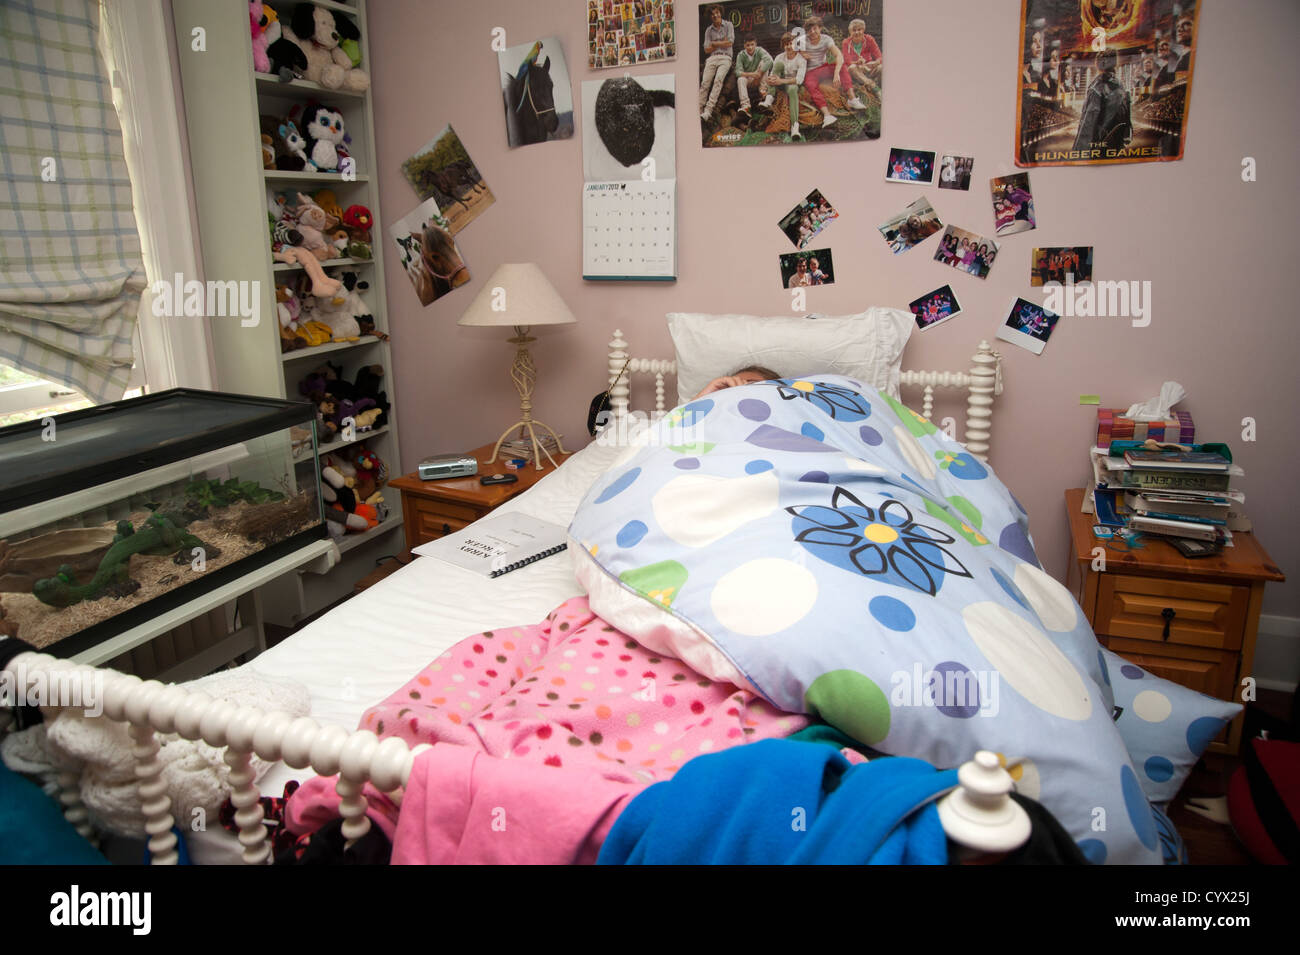 image teenagers bedroom teenagers bedroom with posters and stuffed animals unmade bed teenager in it